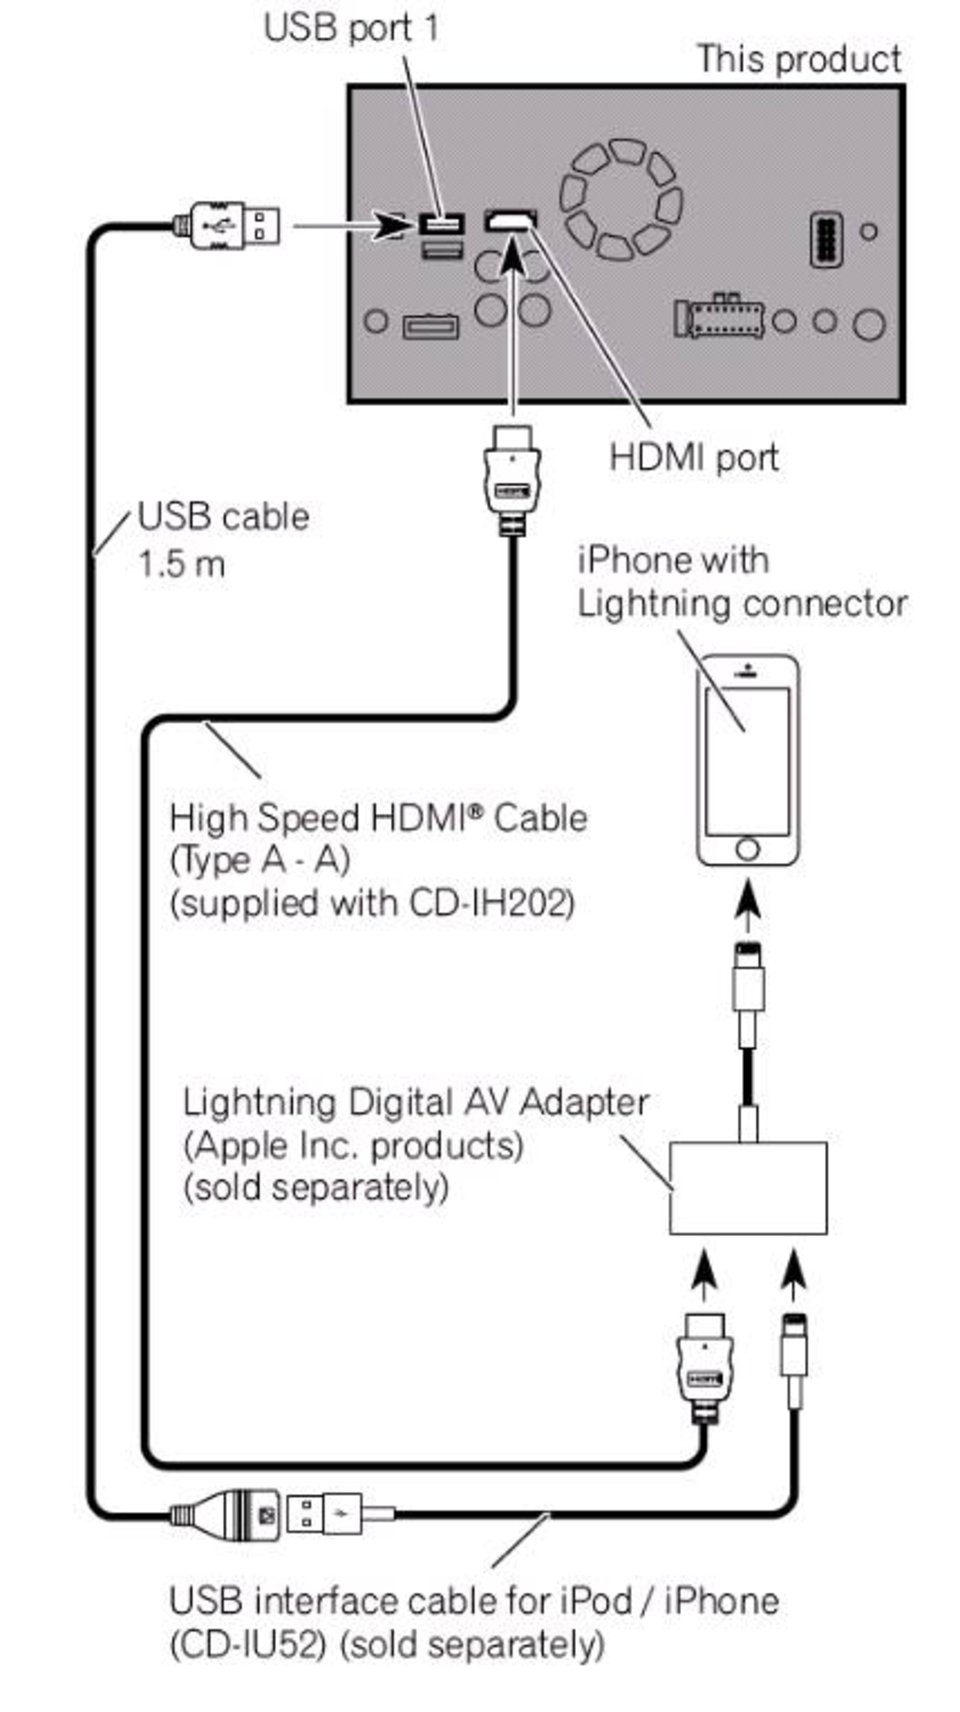 Pioneer Sph Da01 Wiring Diagram 31 Images Iphone Lightning Cable 6 Da120 Appradio Sphda120iphone5connectitok Evtq370 At Cita 5 5s 5c